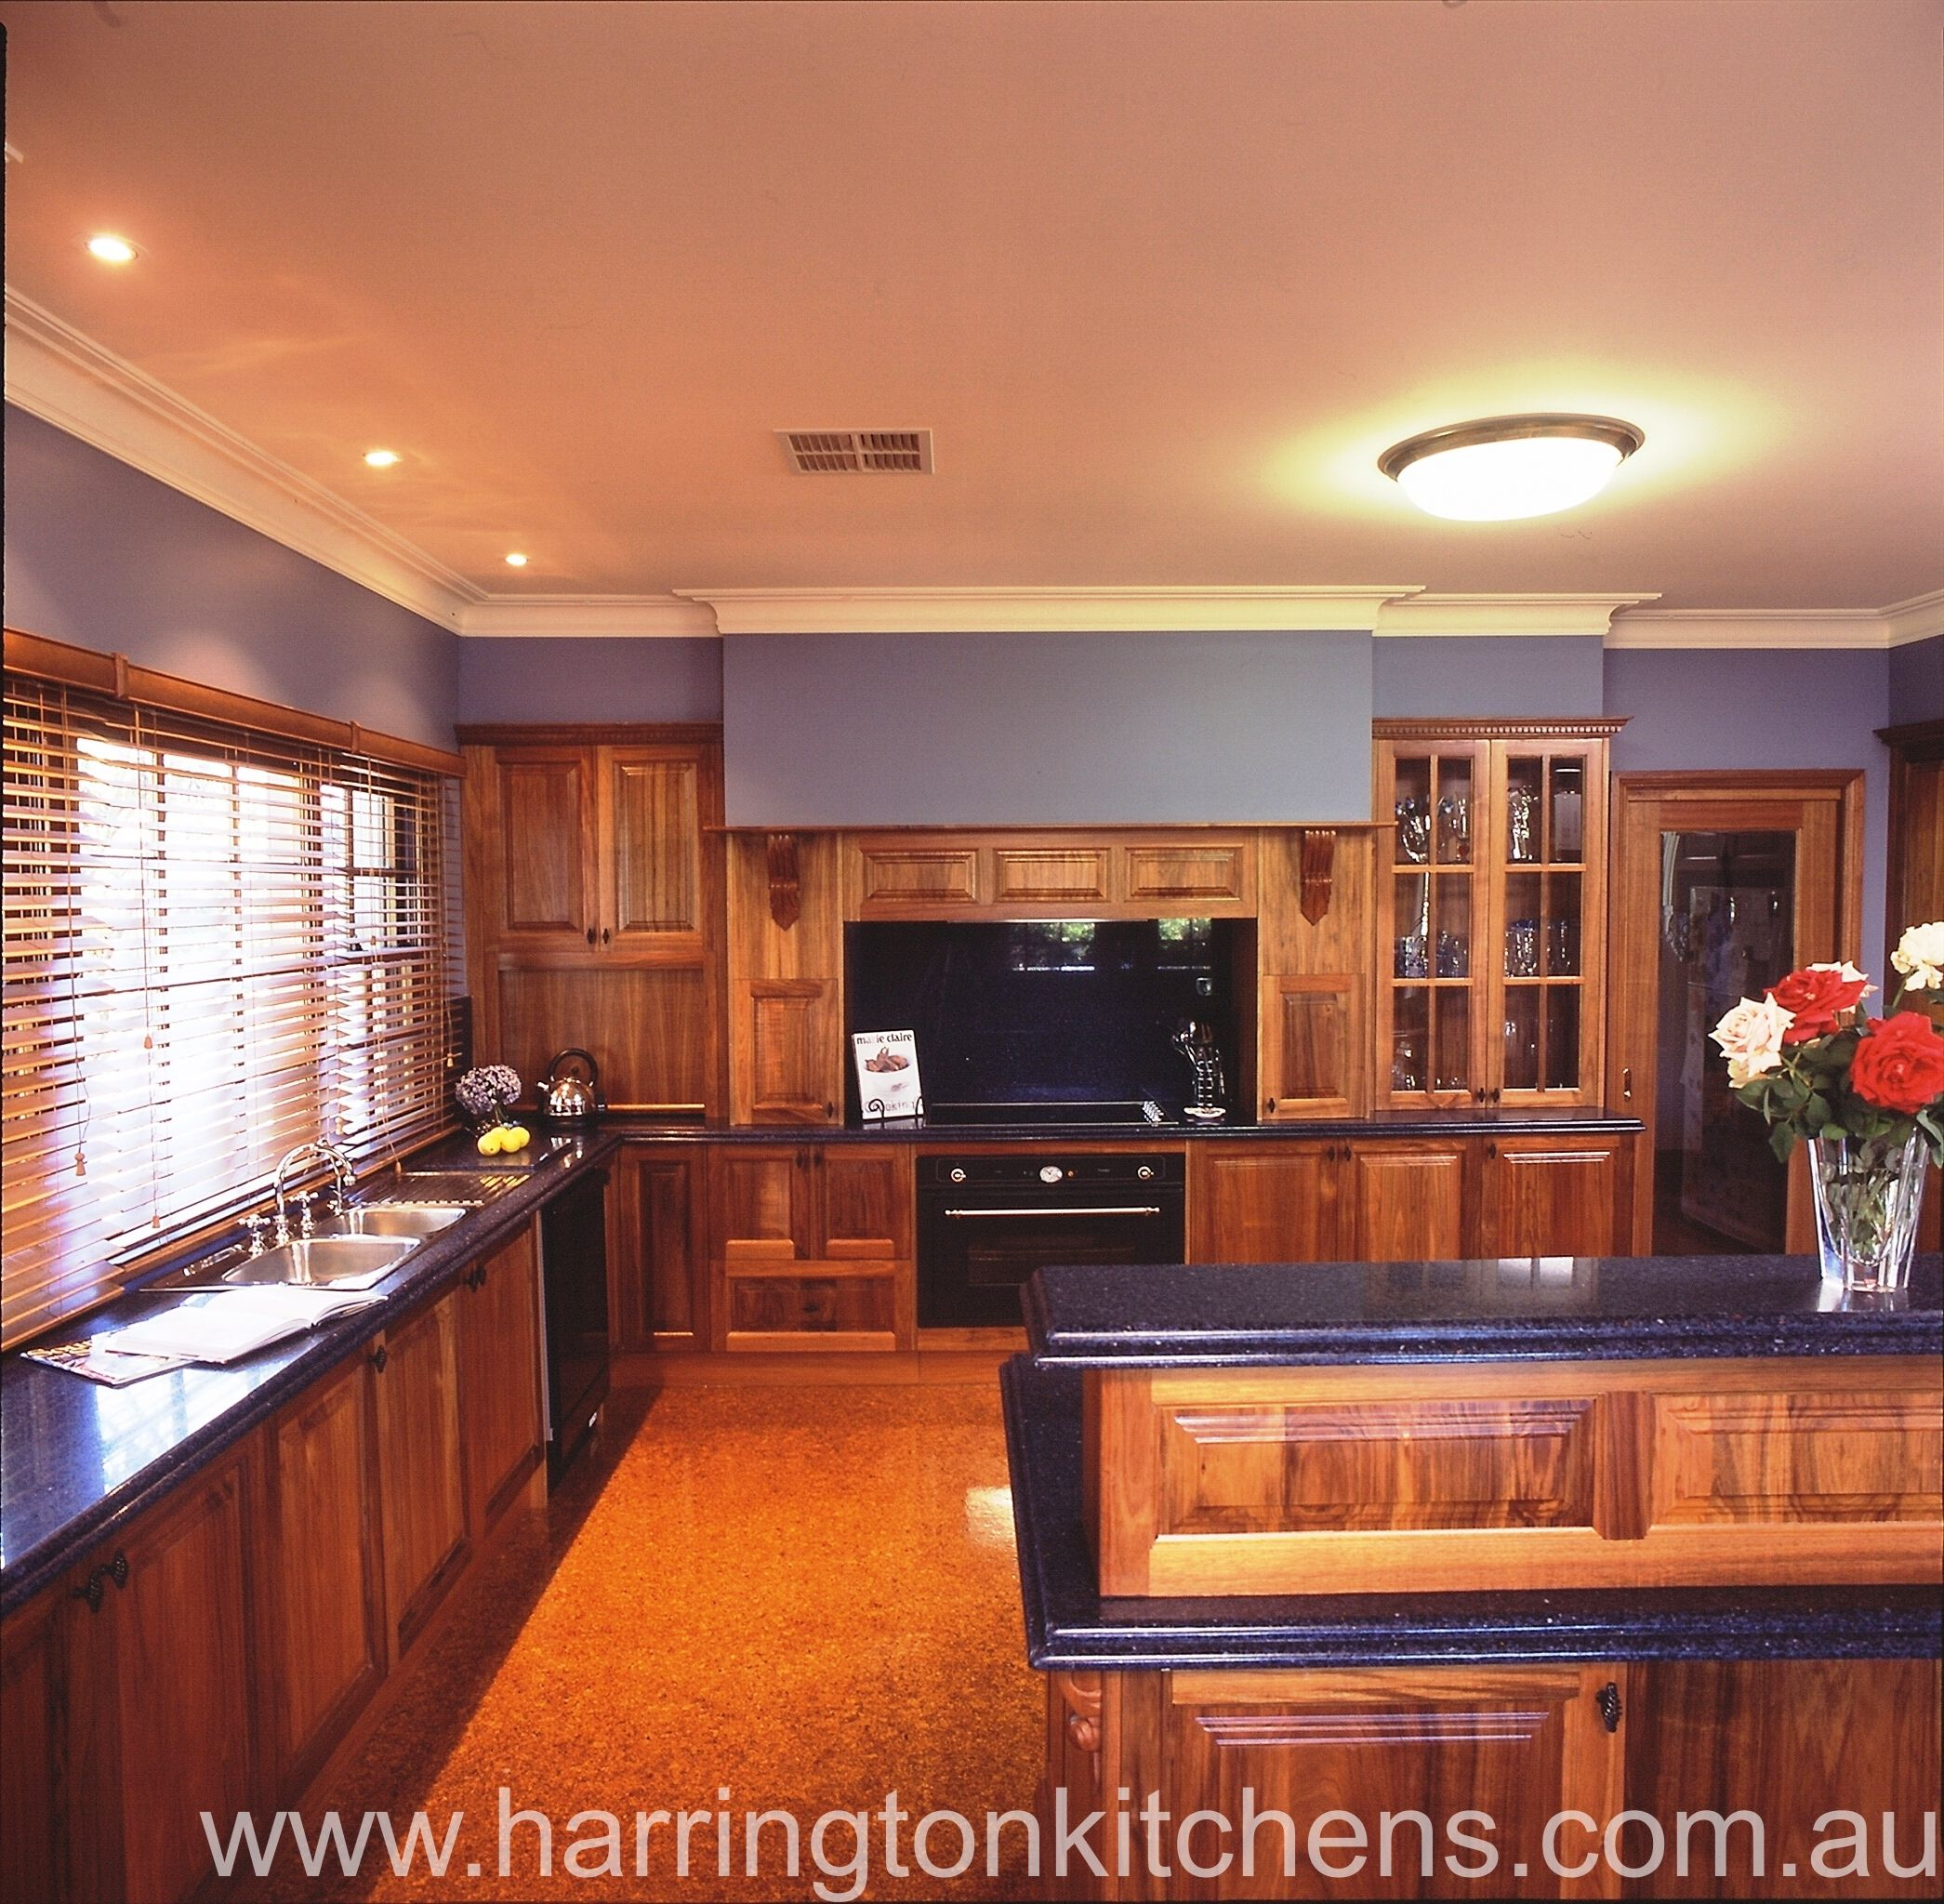 Timber Kitchen Black Benchtop: Timber Country Kitchen With Black Granite Bench Top